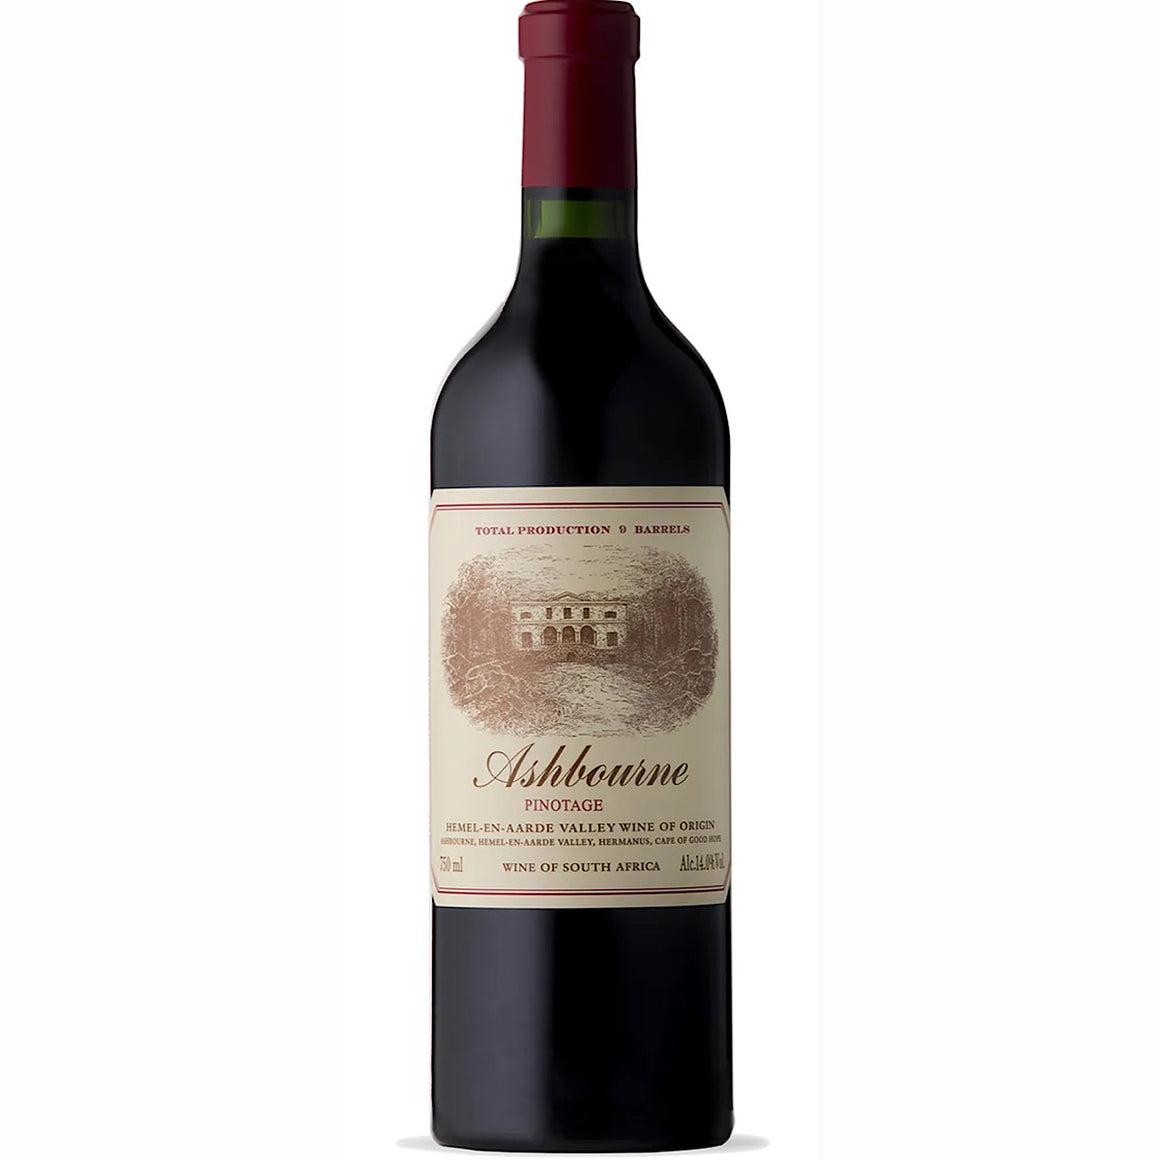 Ashbourne Pinotage 2016/2017 6 Bottle Case 75cl